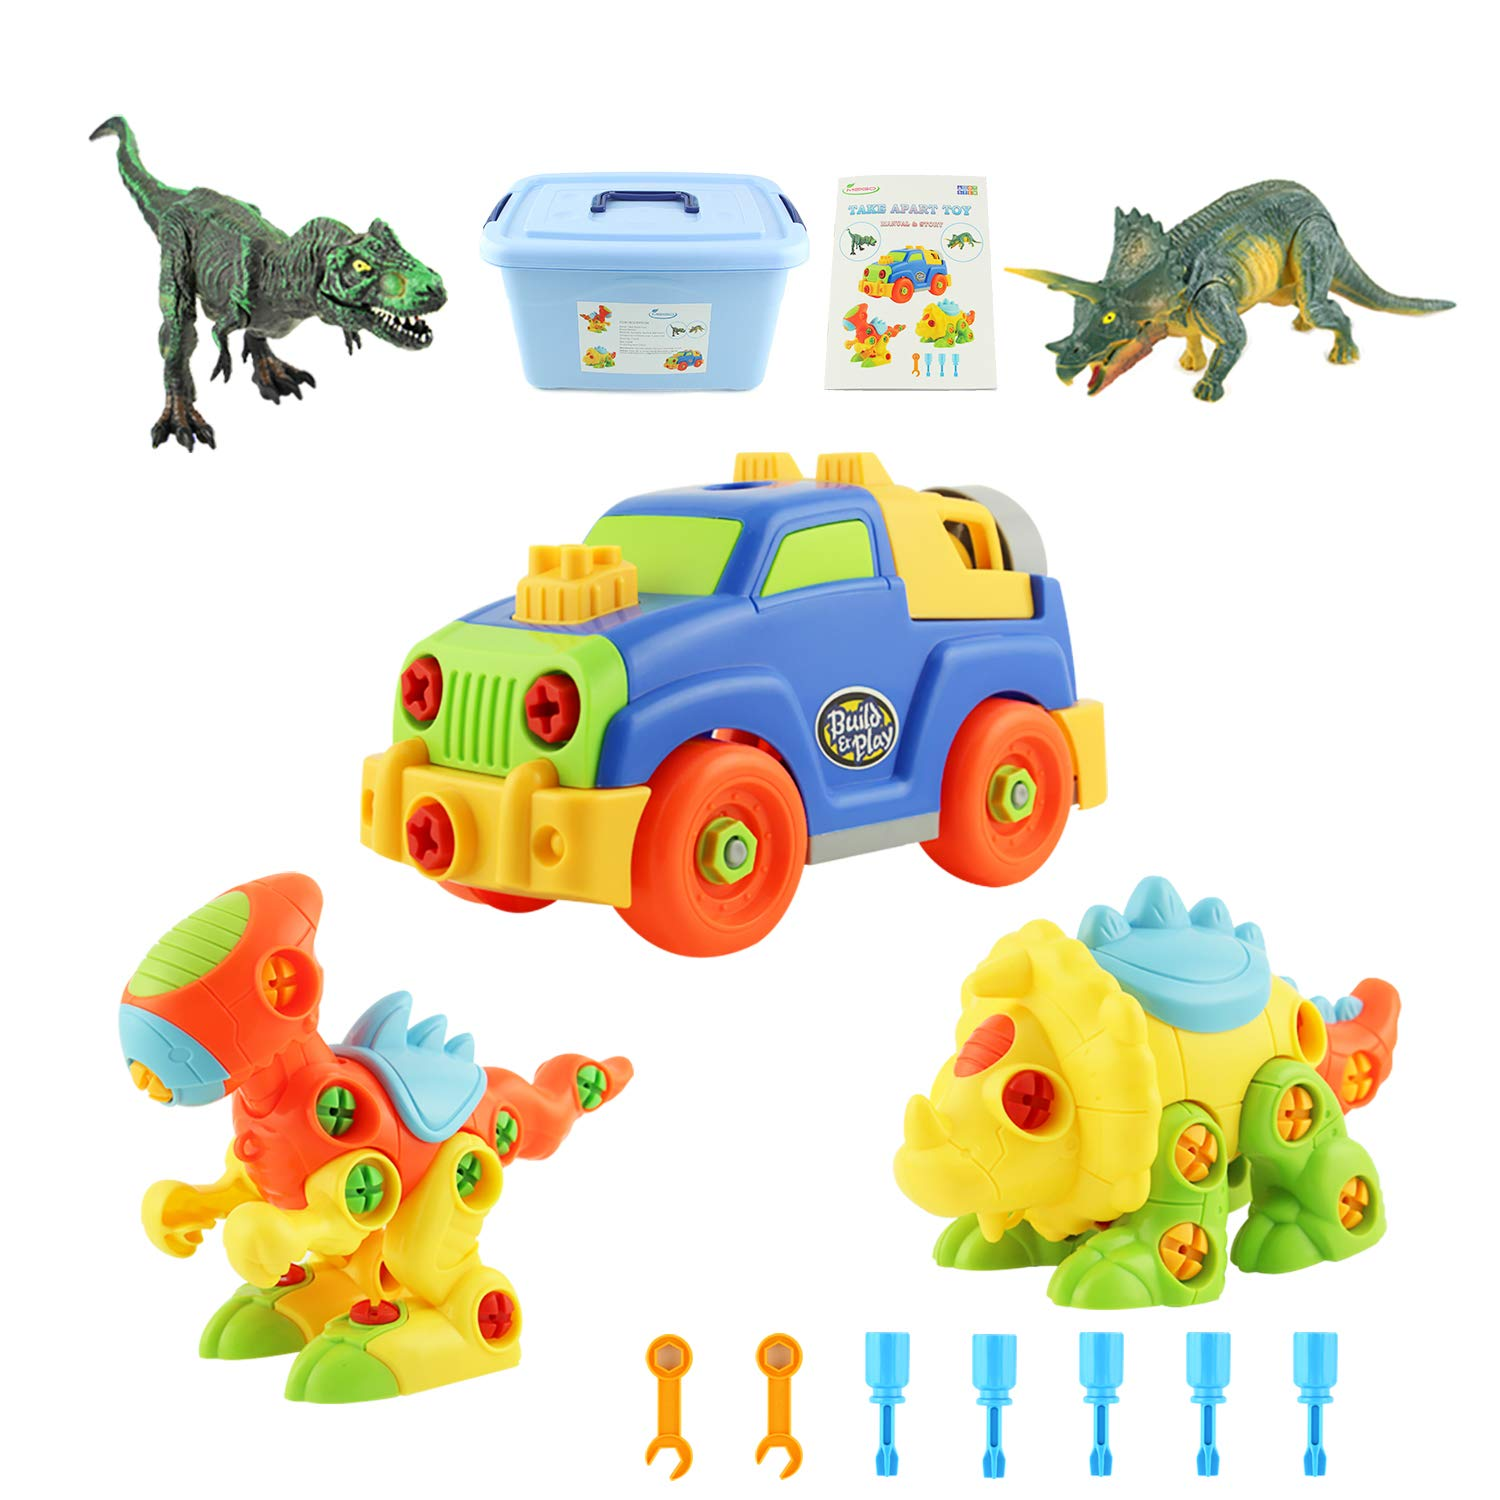 MEIGO Dinosaur Toys - Toddlers STEM Learning Take Apart Toys Construction Engineering Building Play Set for Kids 3 4 5 6 Year Old Boys Girls (5 Pack)